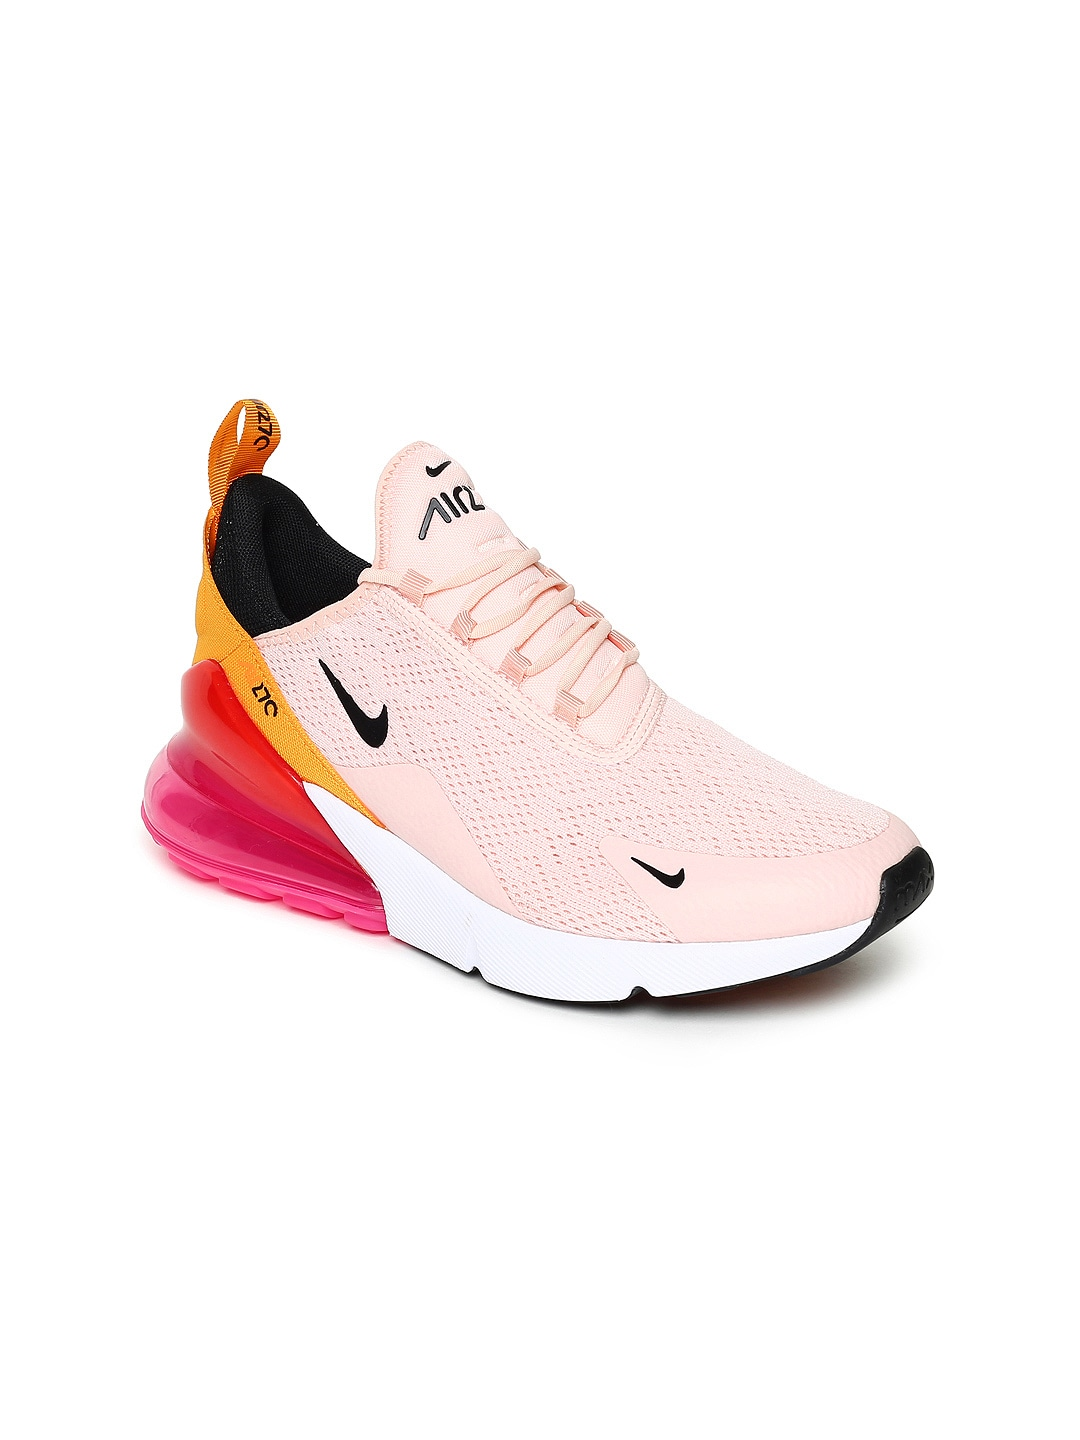 a55b87ae0d93 Nike - Shop for Nike Apparels Online in India